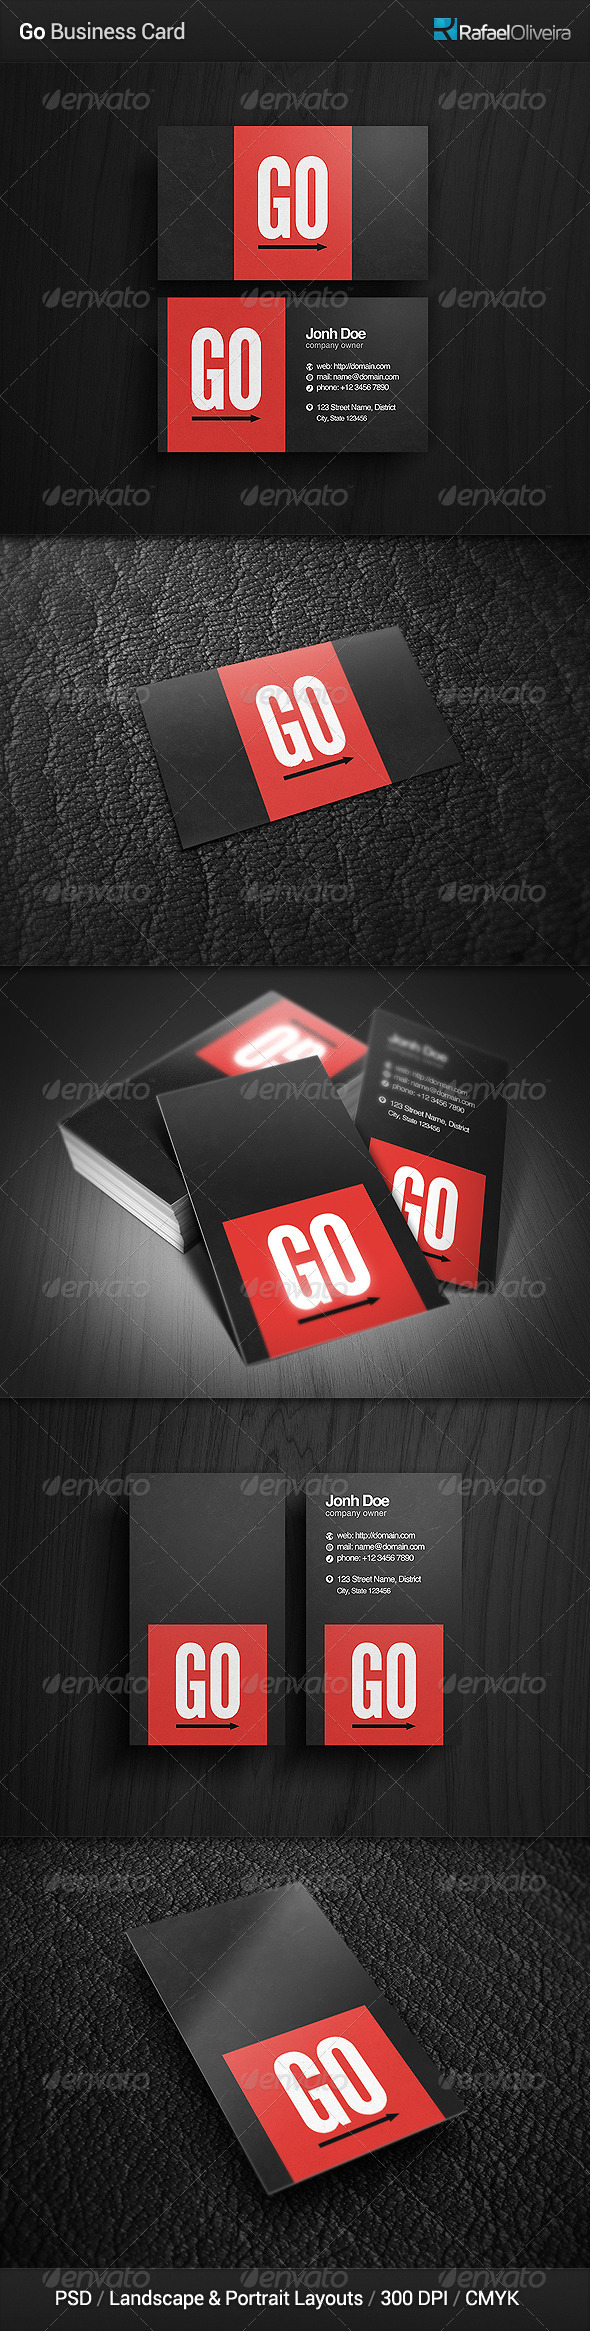 Go Business Card - Corporate Business Cards